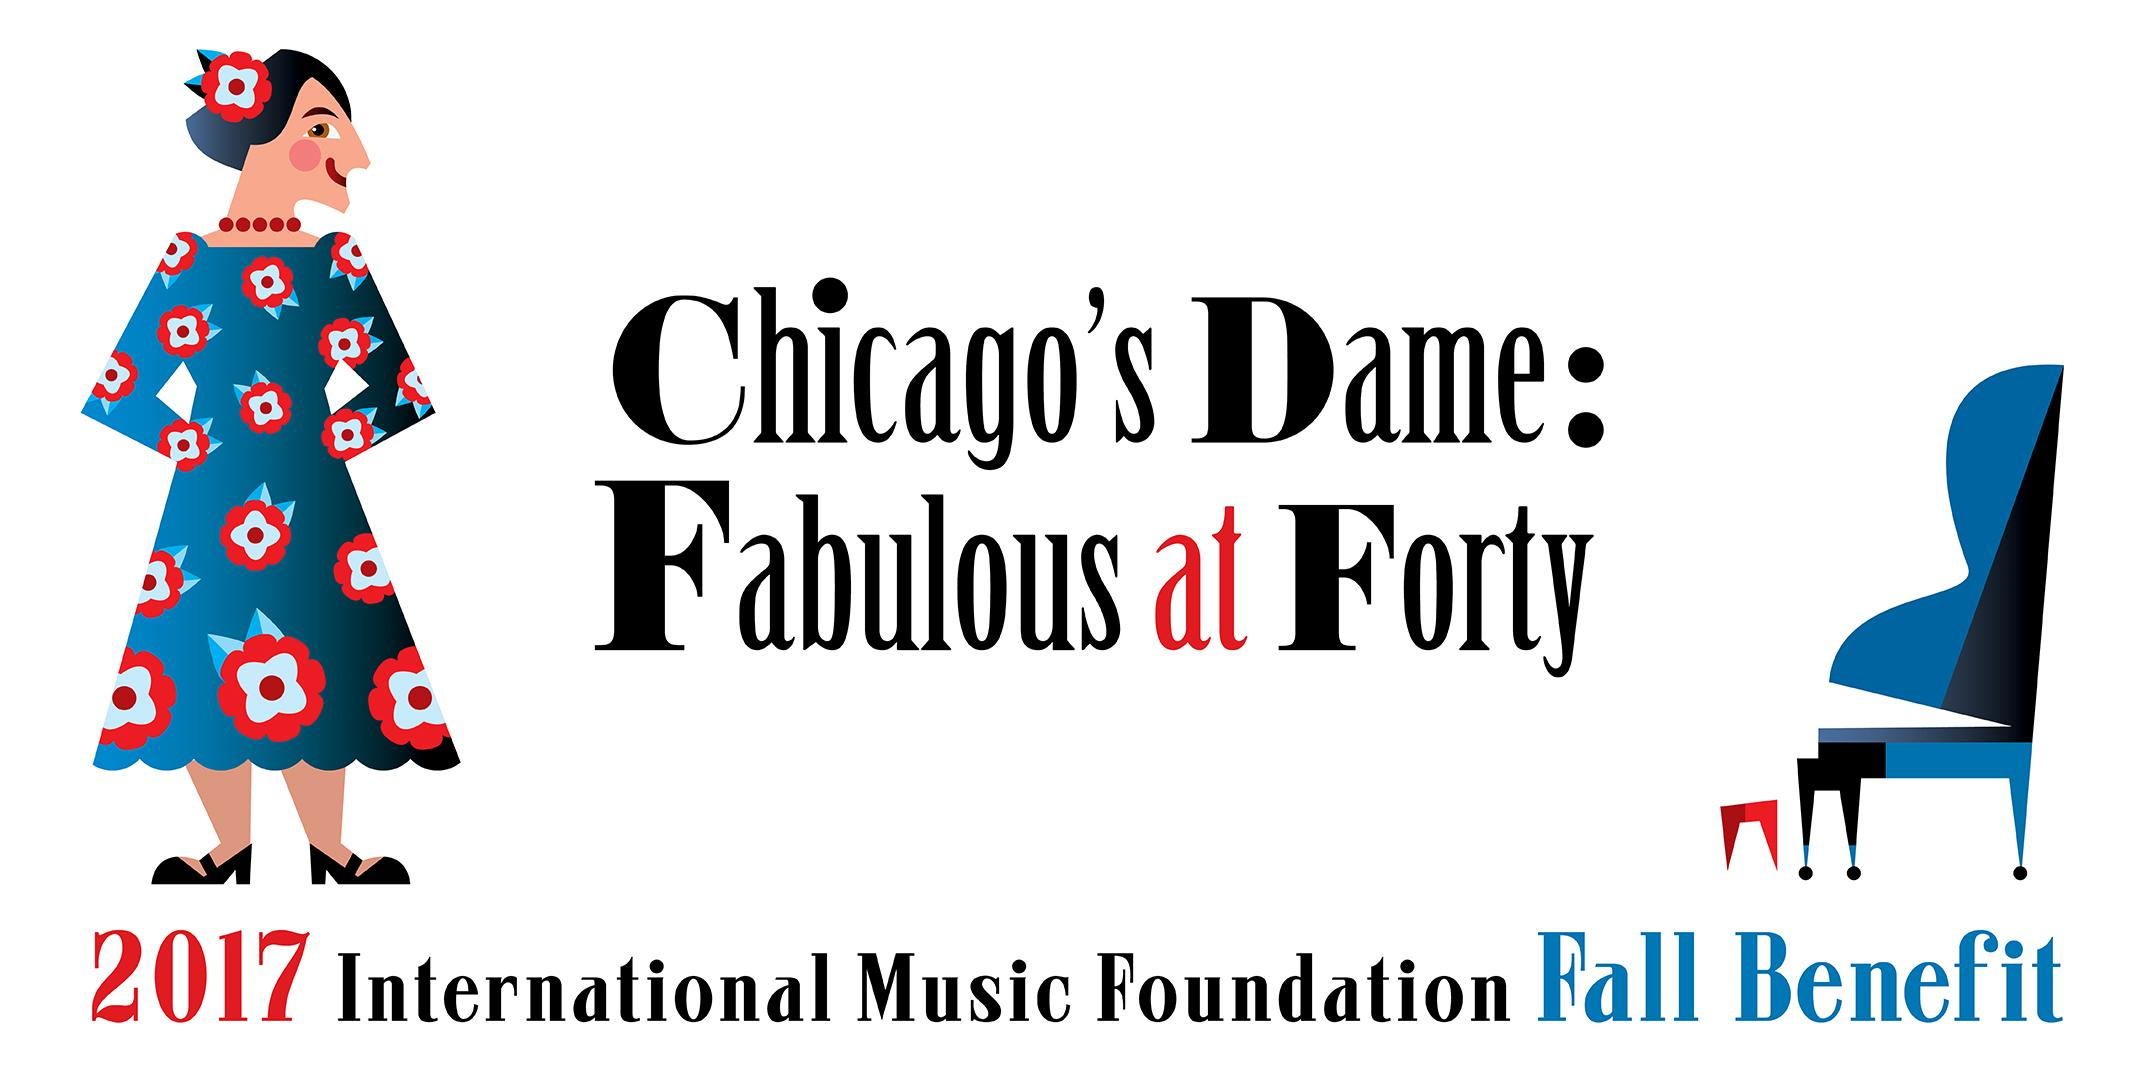 Chicagos dame fabulous at forty tickets tue nov 14 2017 at 530 event details solutioingenieria Images